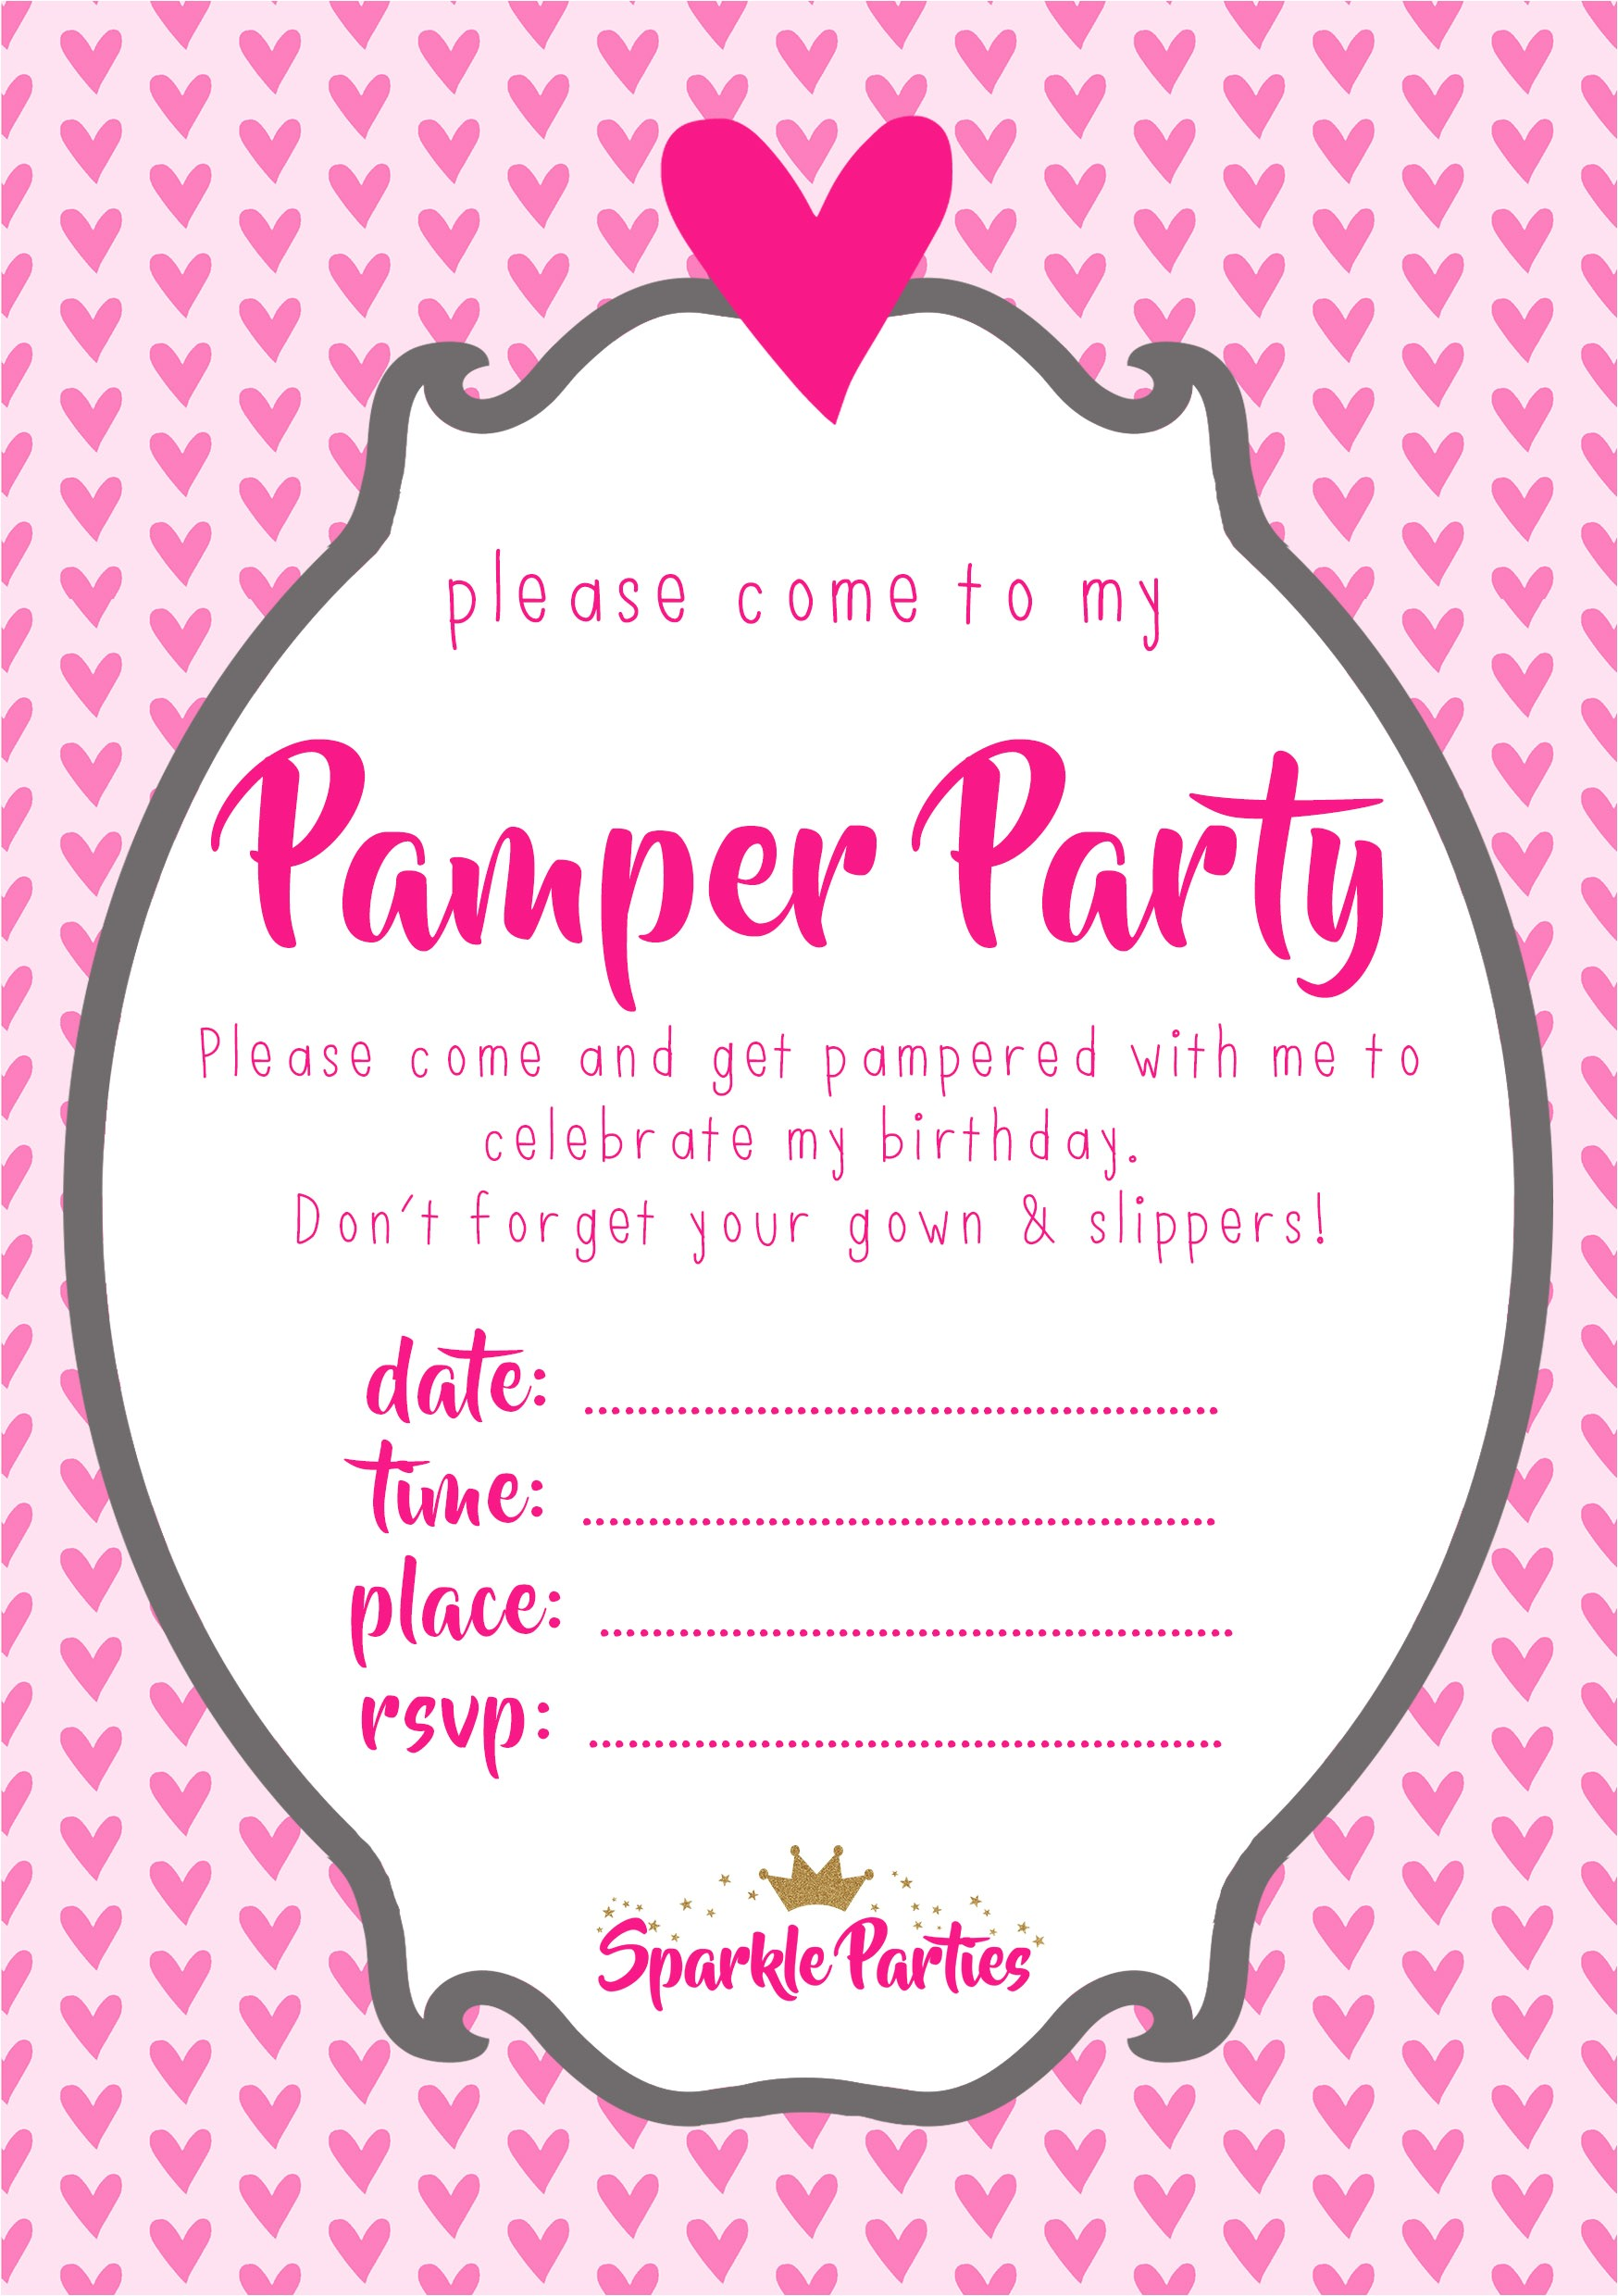 pamper party invitations in addition to redesign your party invitation template 5